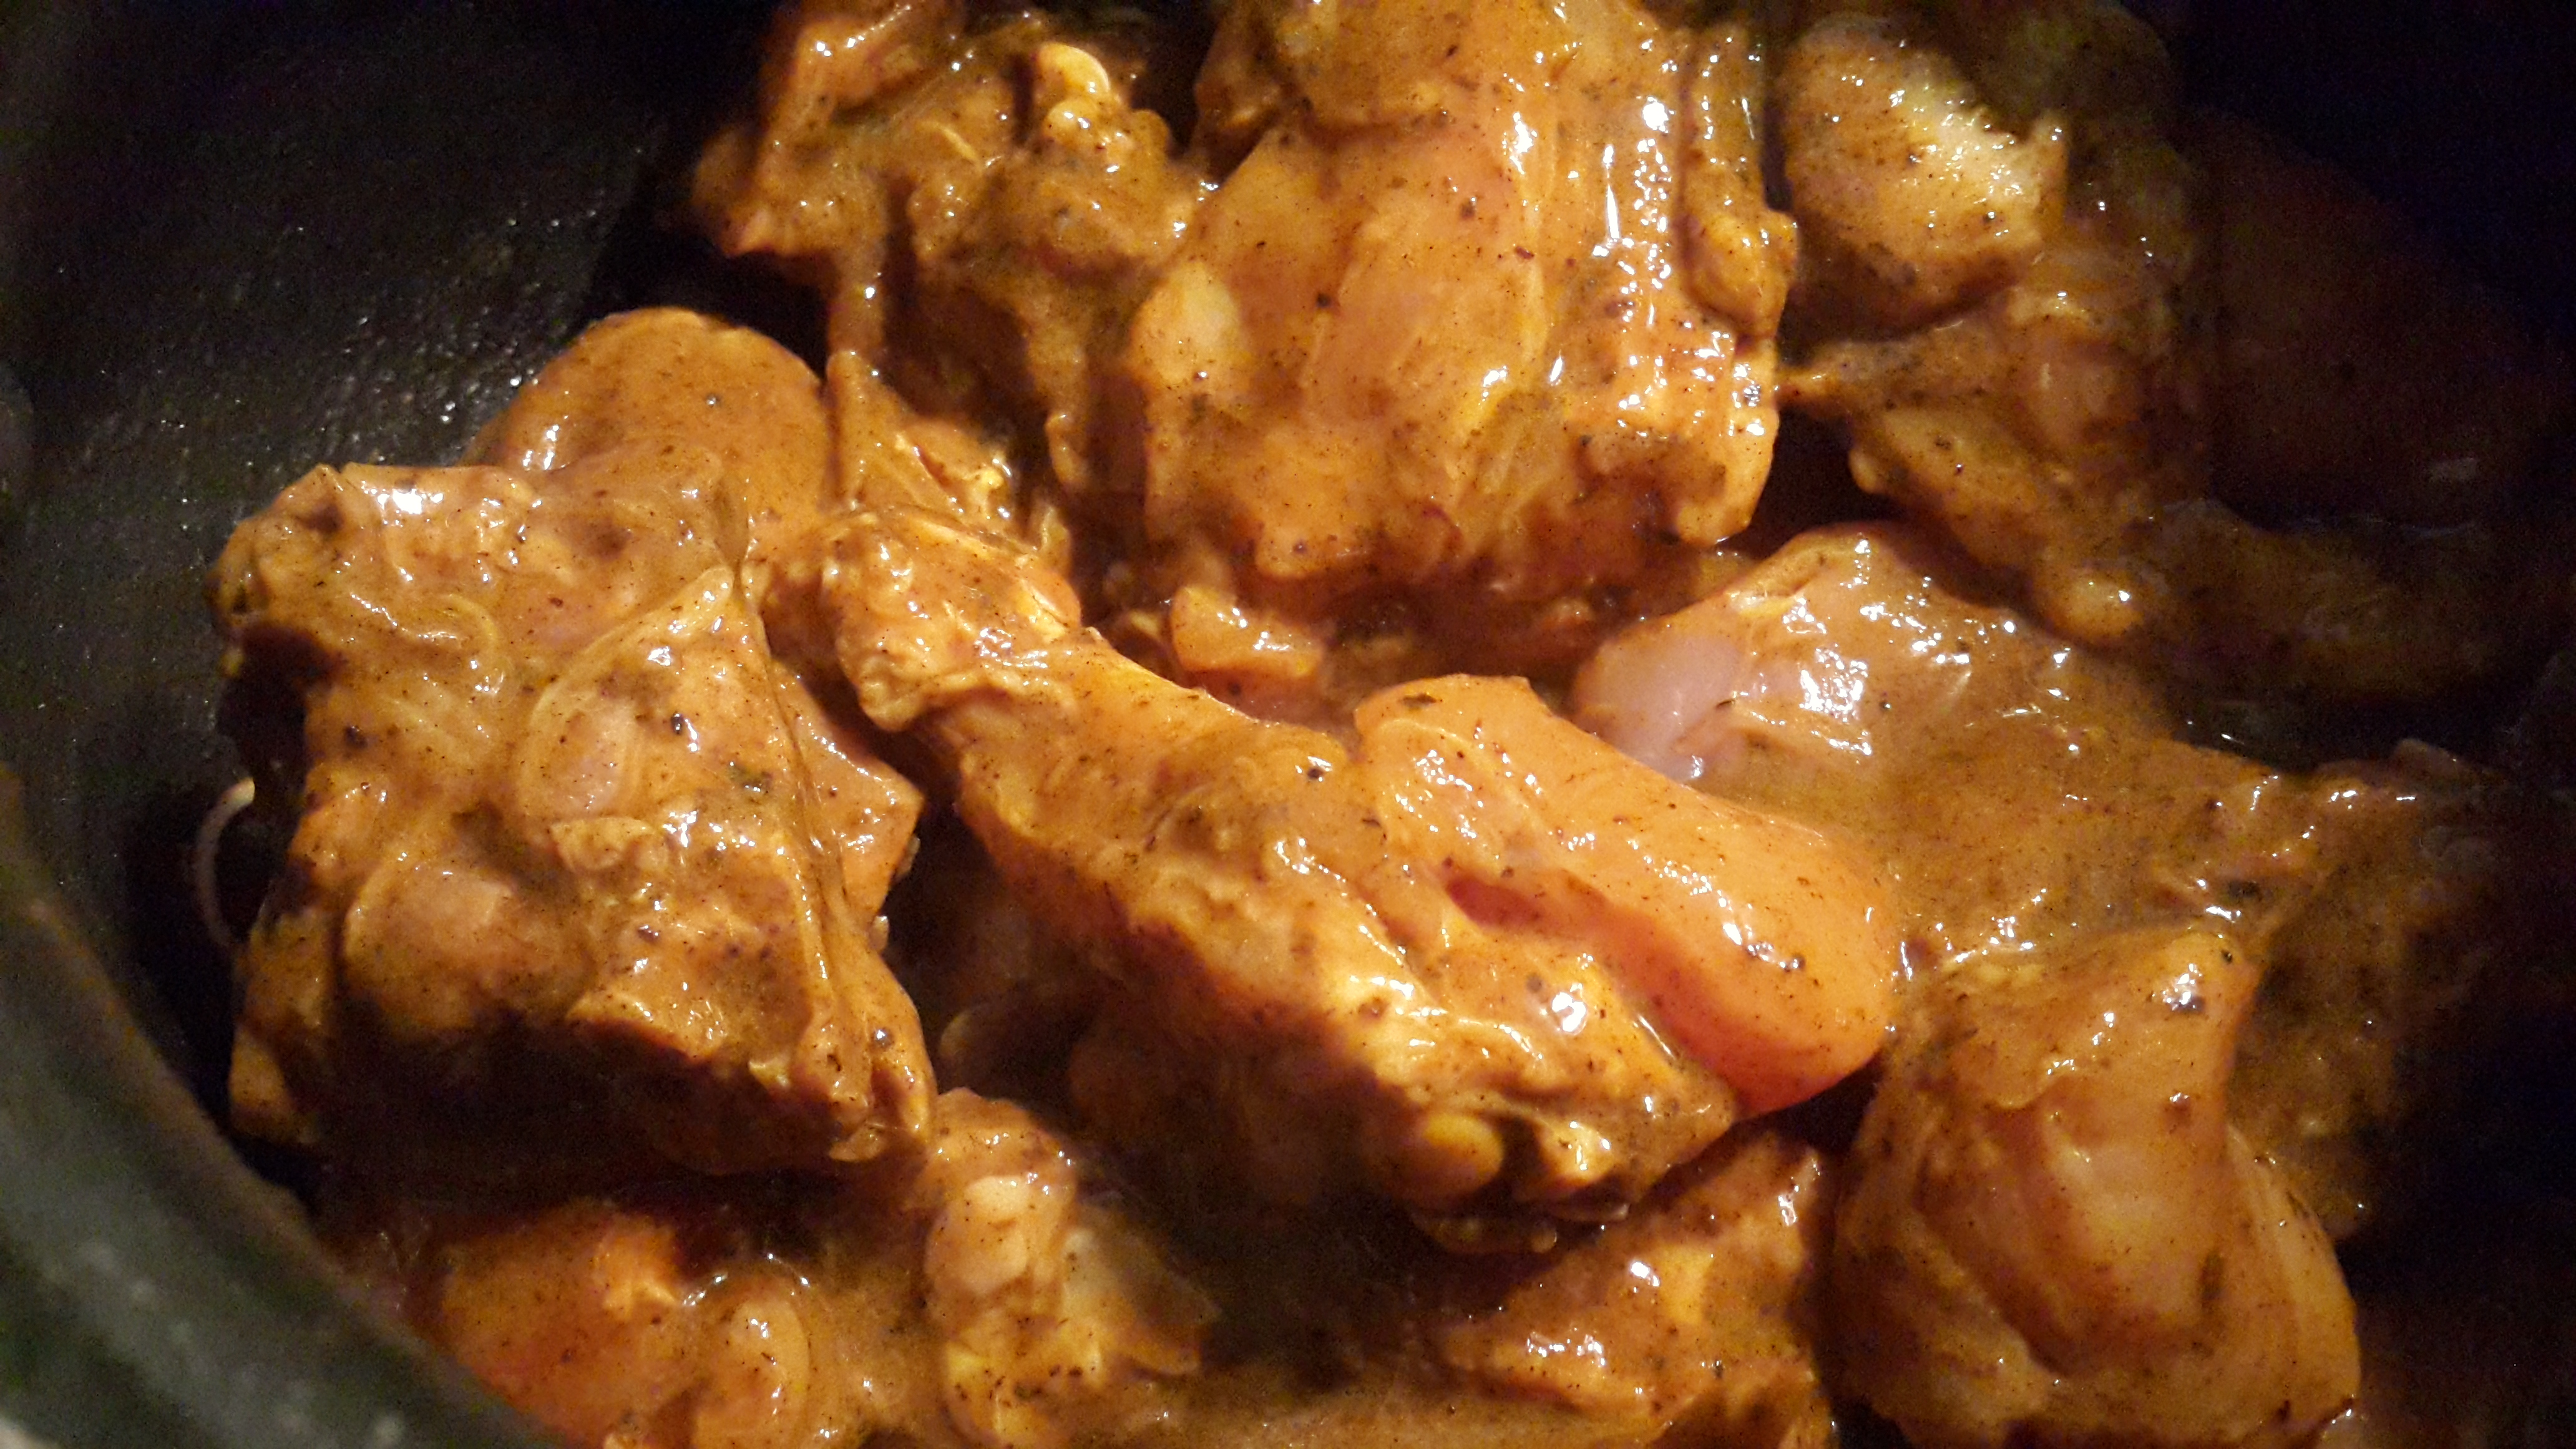 Marinated chicken placed over the sauteed onions